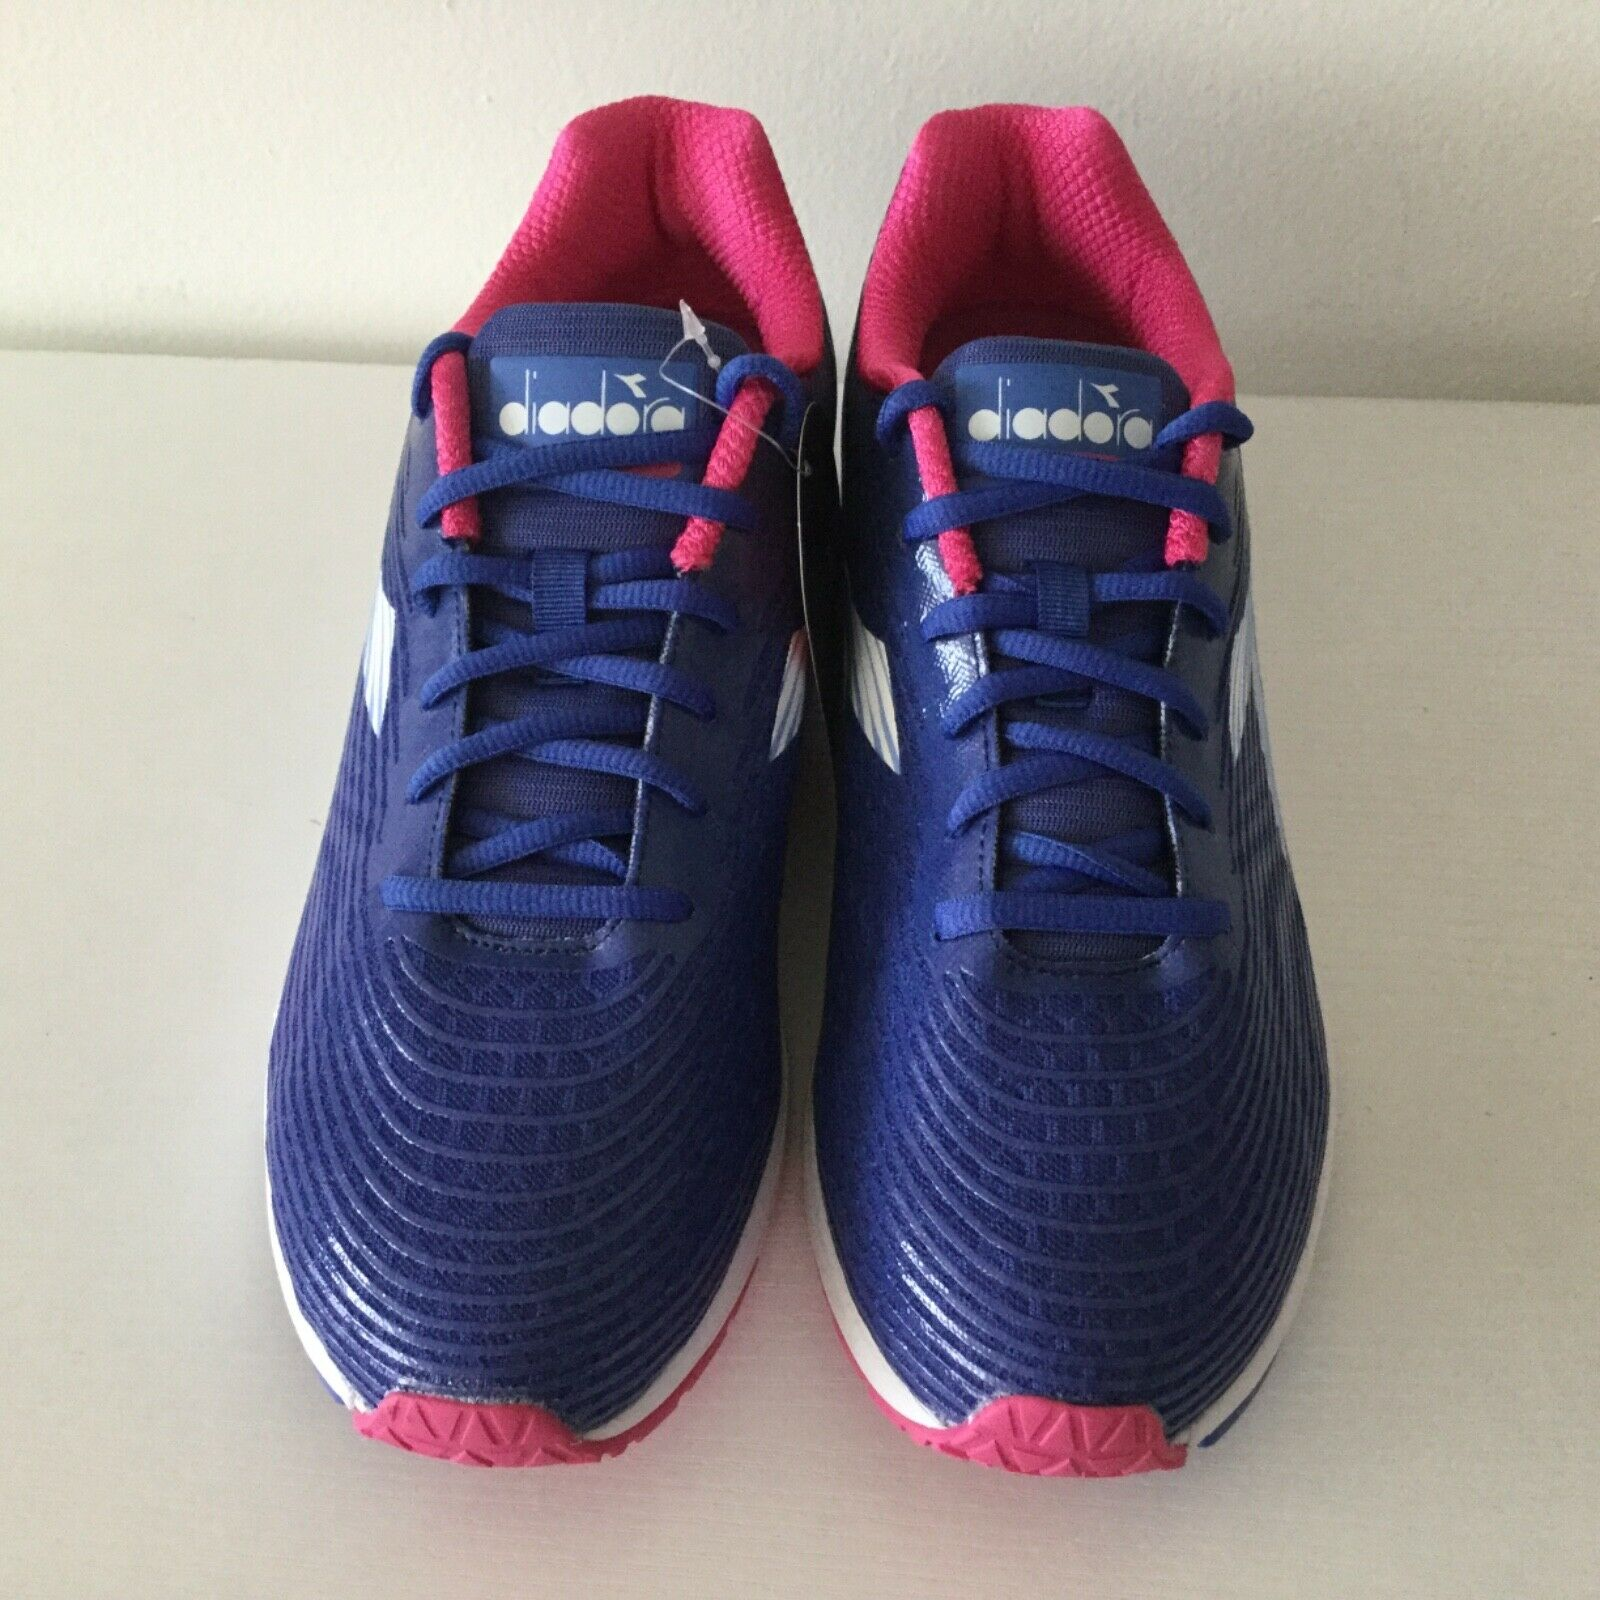 NEW Diadora Action +3 Sneaker Running Athletic shoes bluee Pink 10 W - 8.5 M